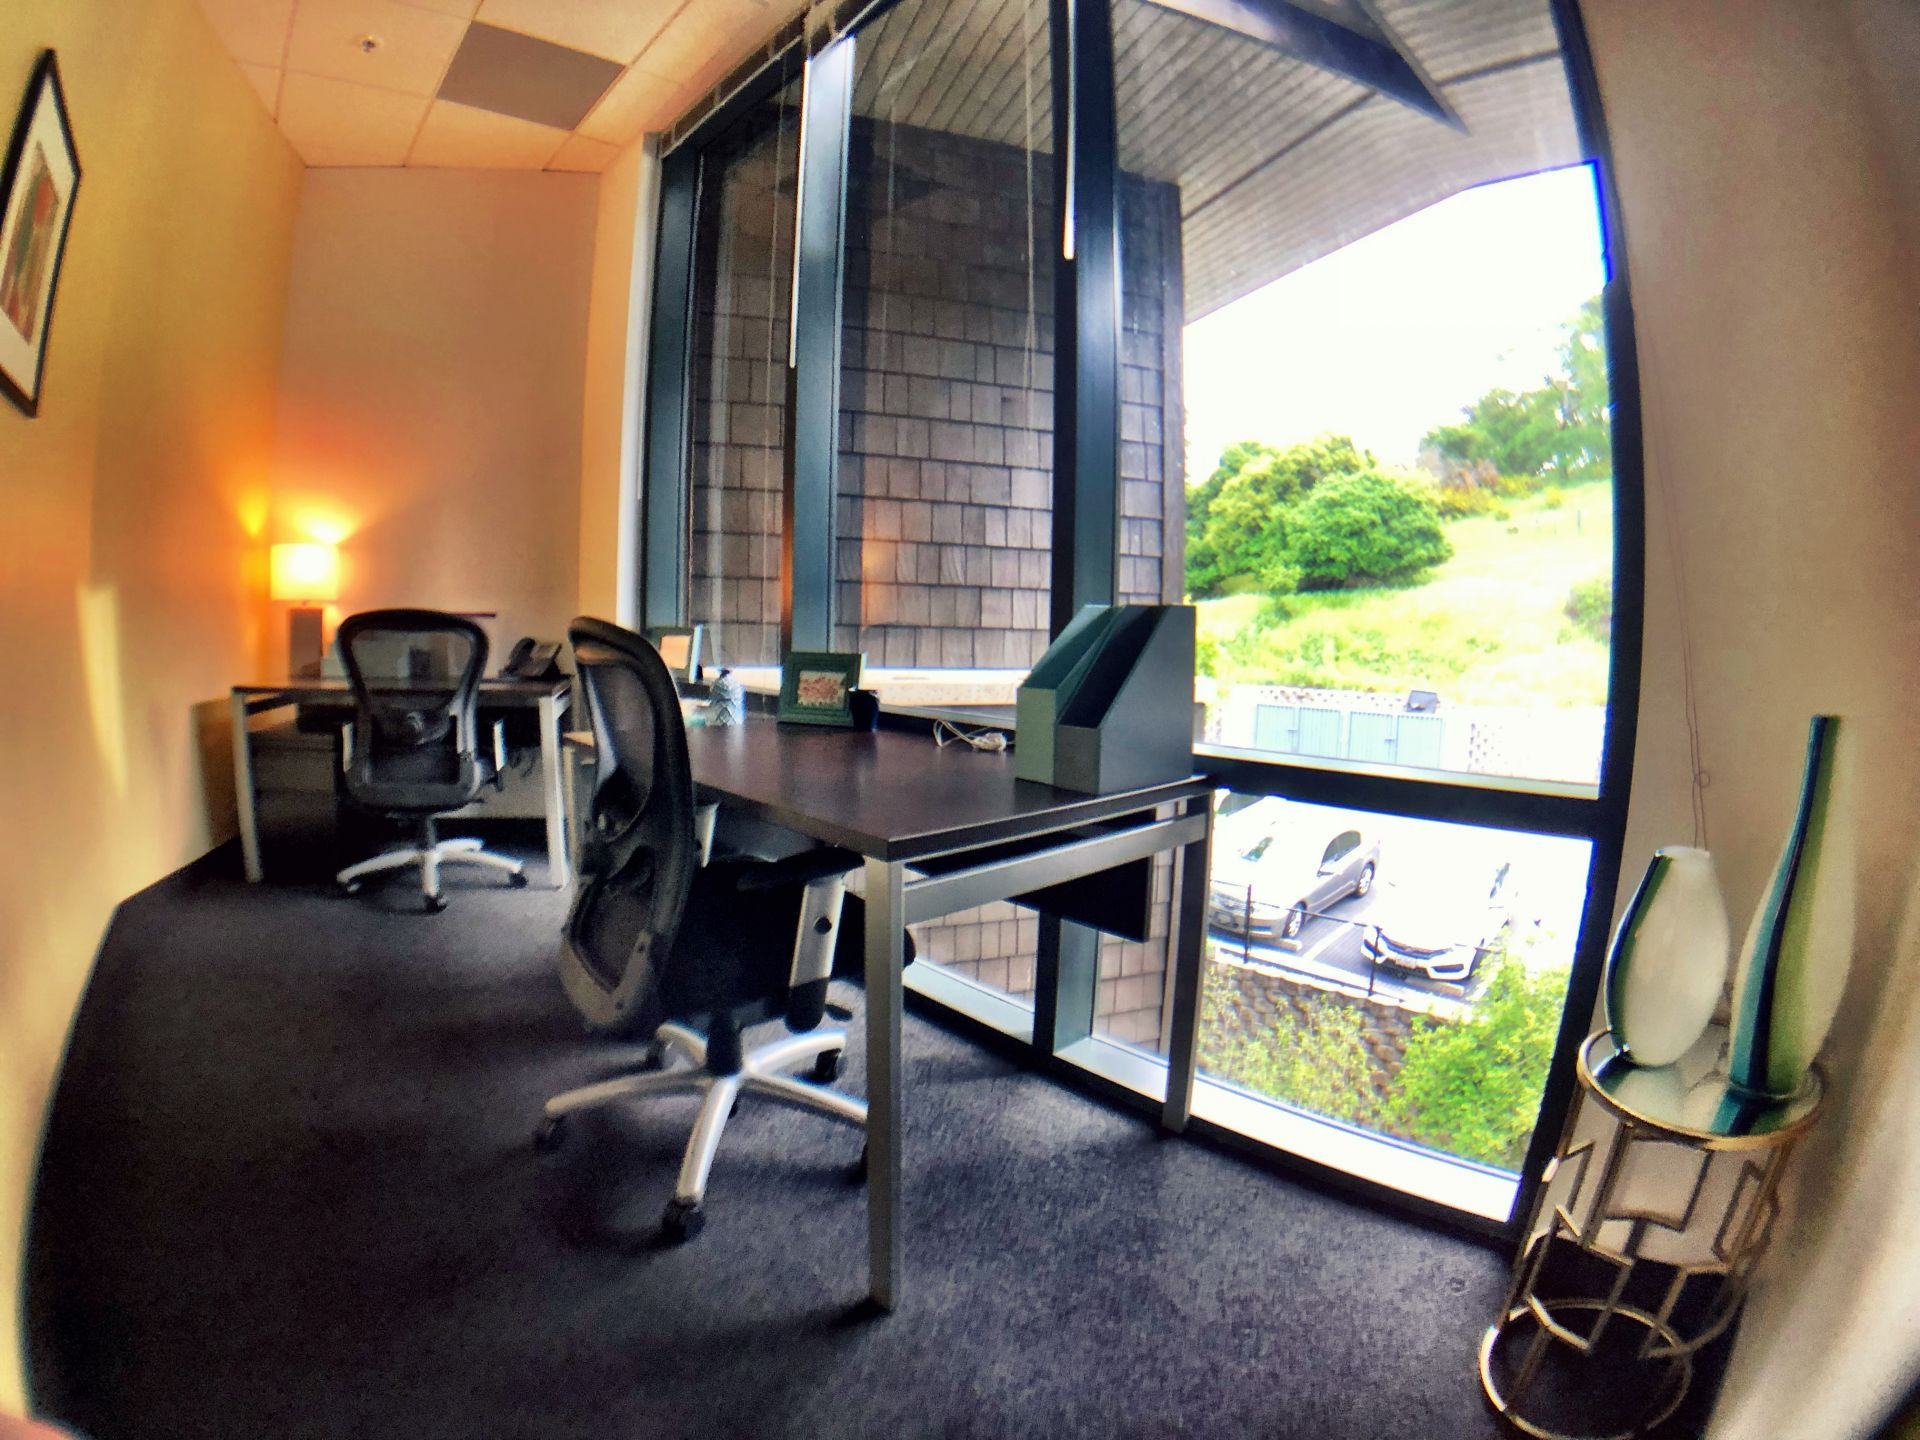 Regus Woodside Office Center, Novato